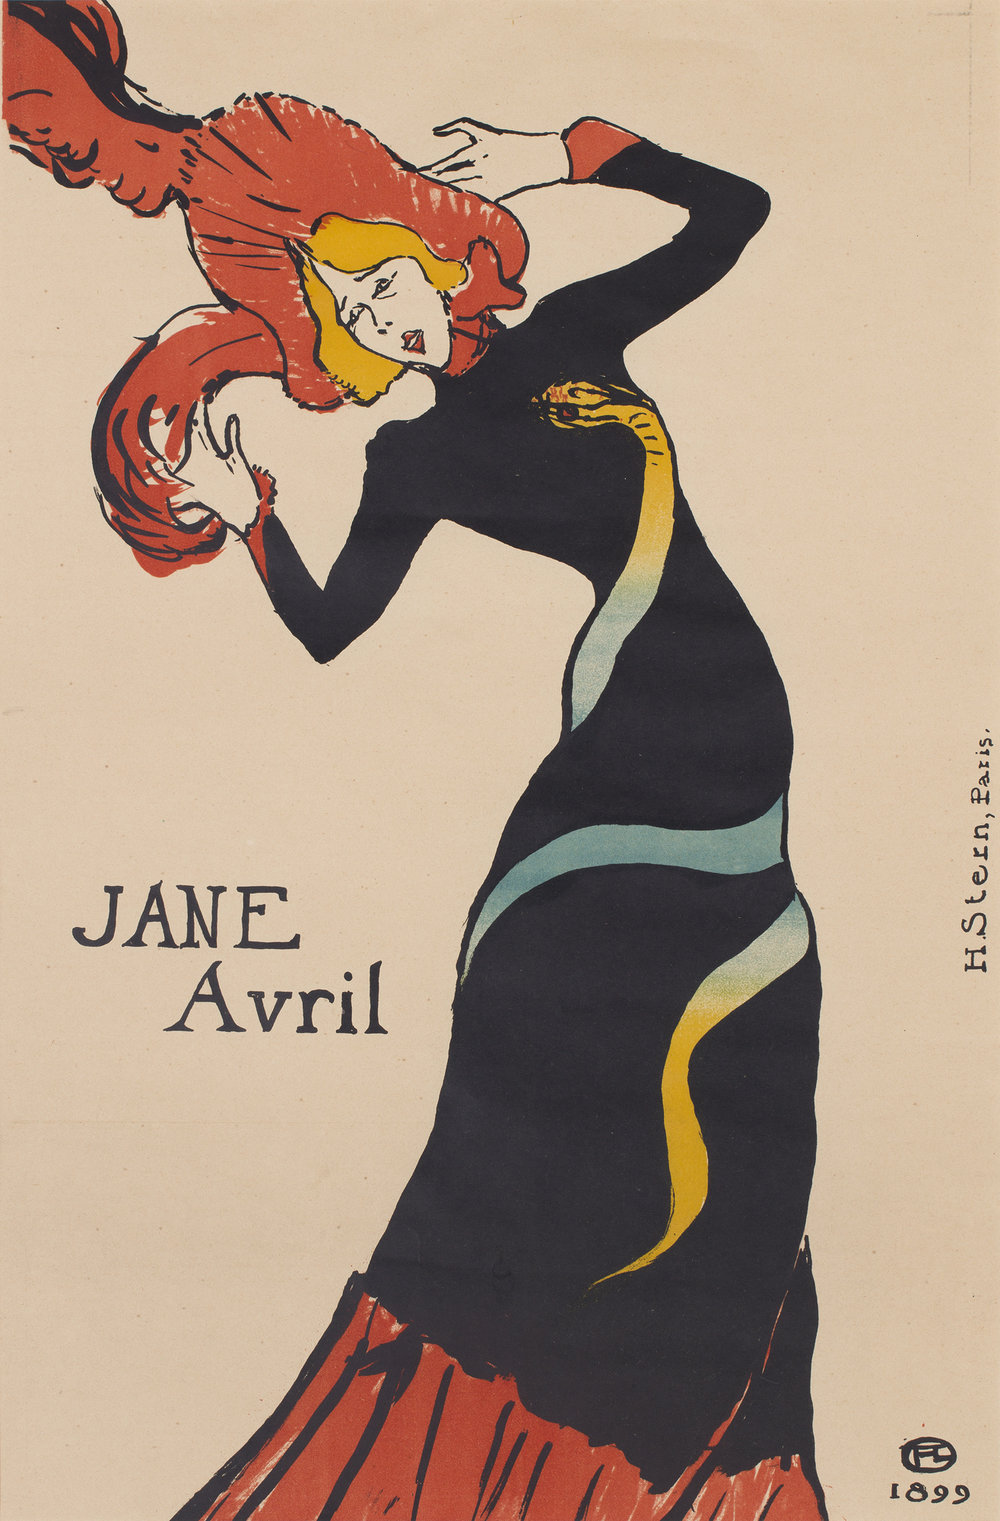 Henri de Toulouse-Lautrec, Jane Avril, 1899, Litograph in colours, 55,4 x 37,1 cm